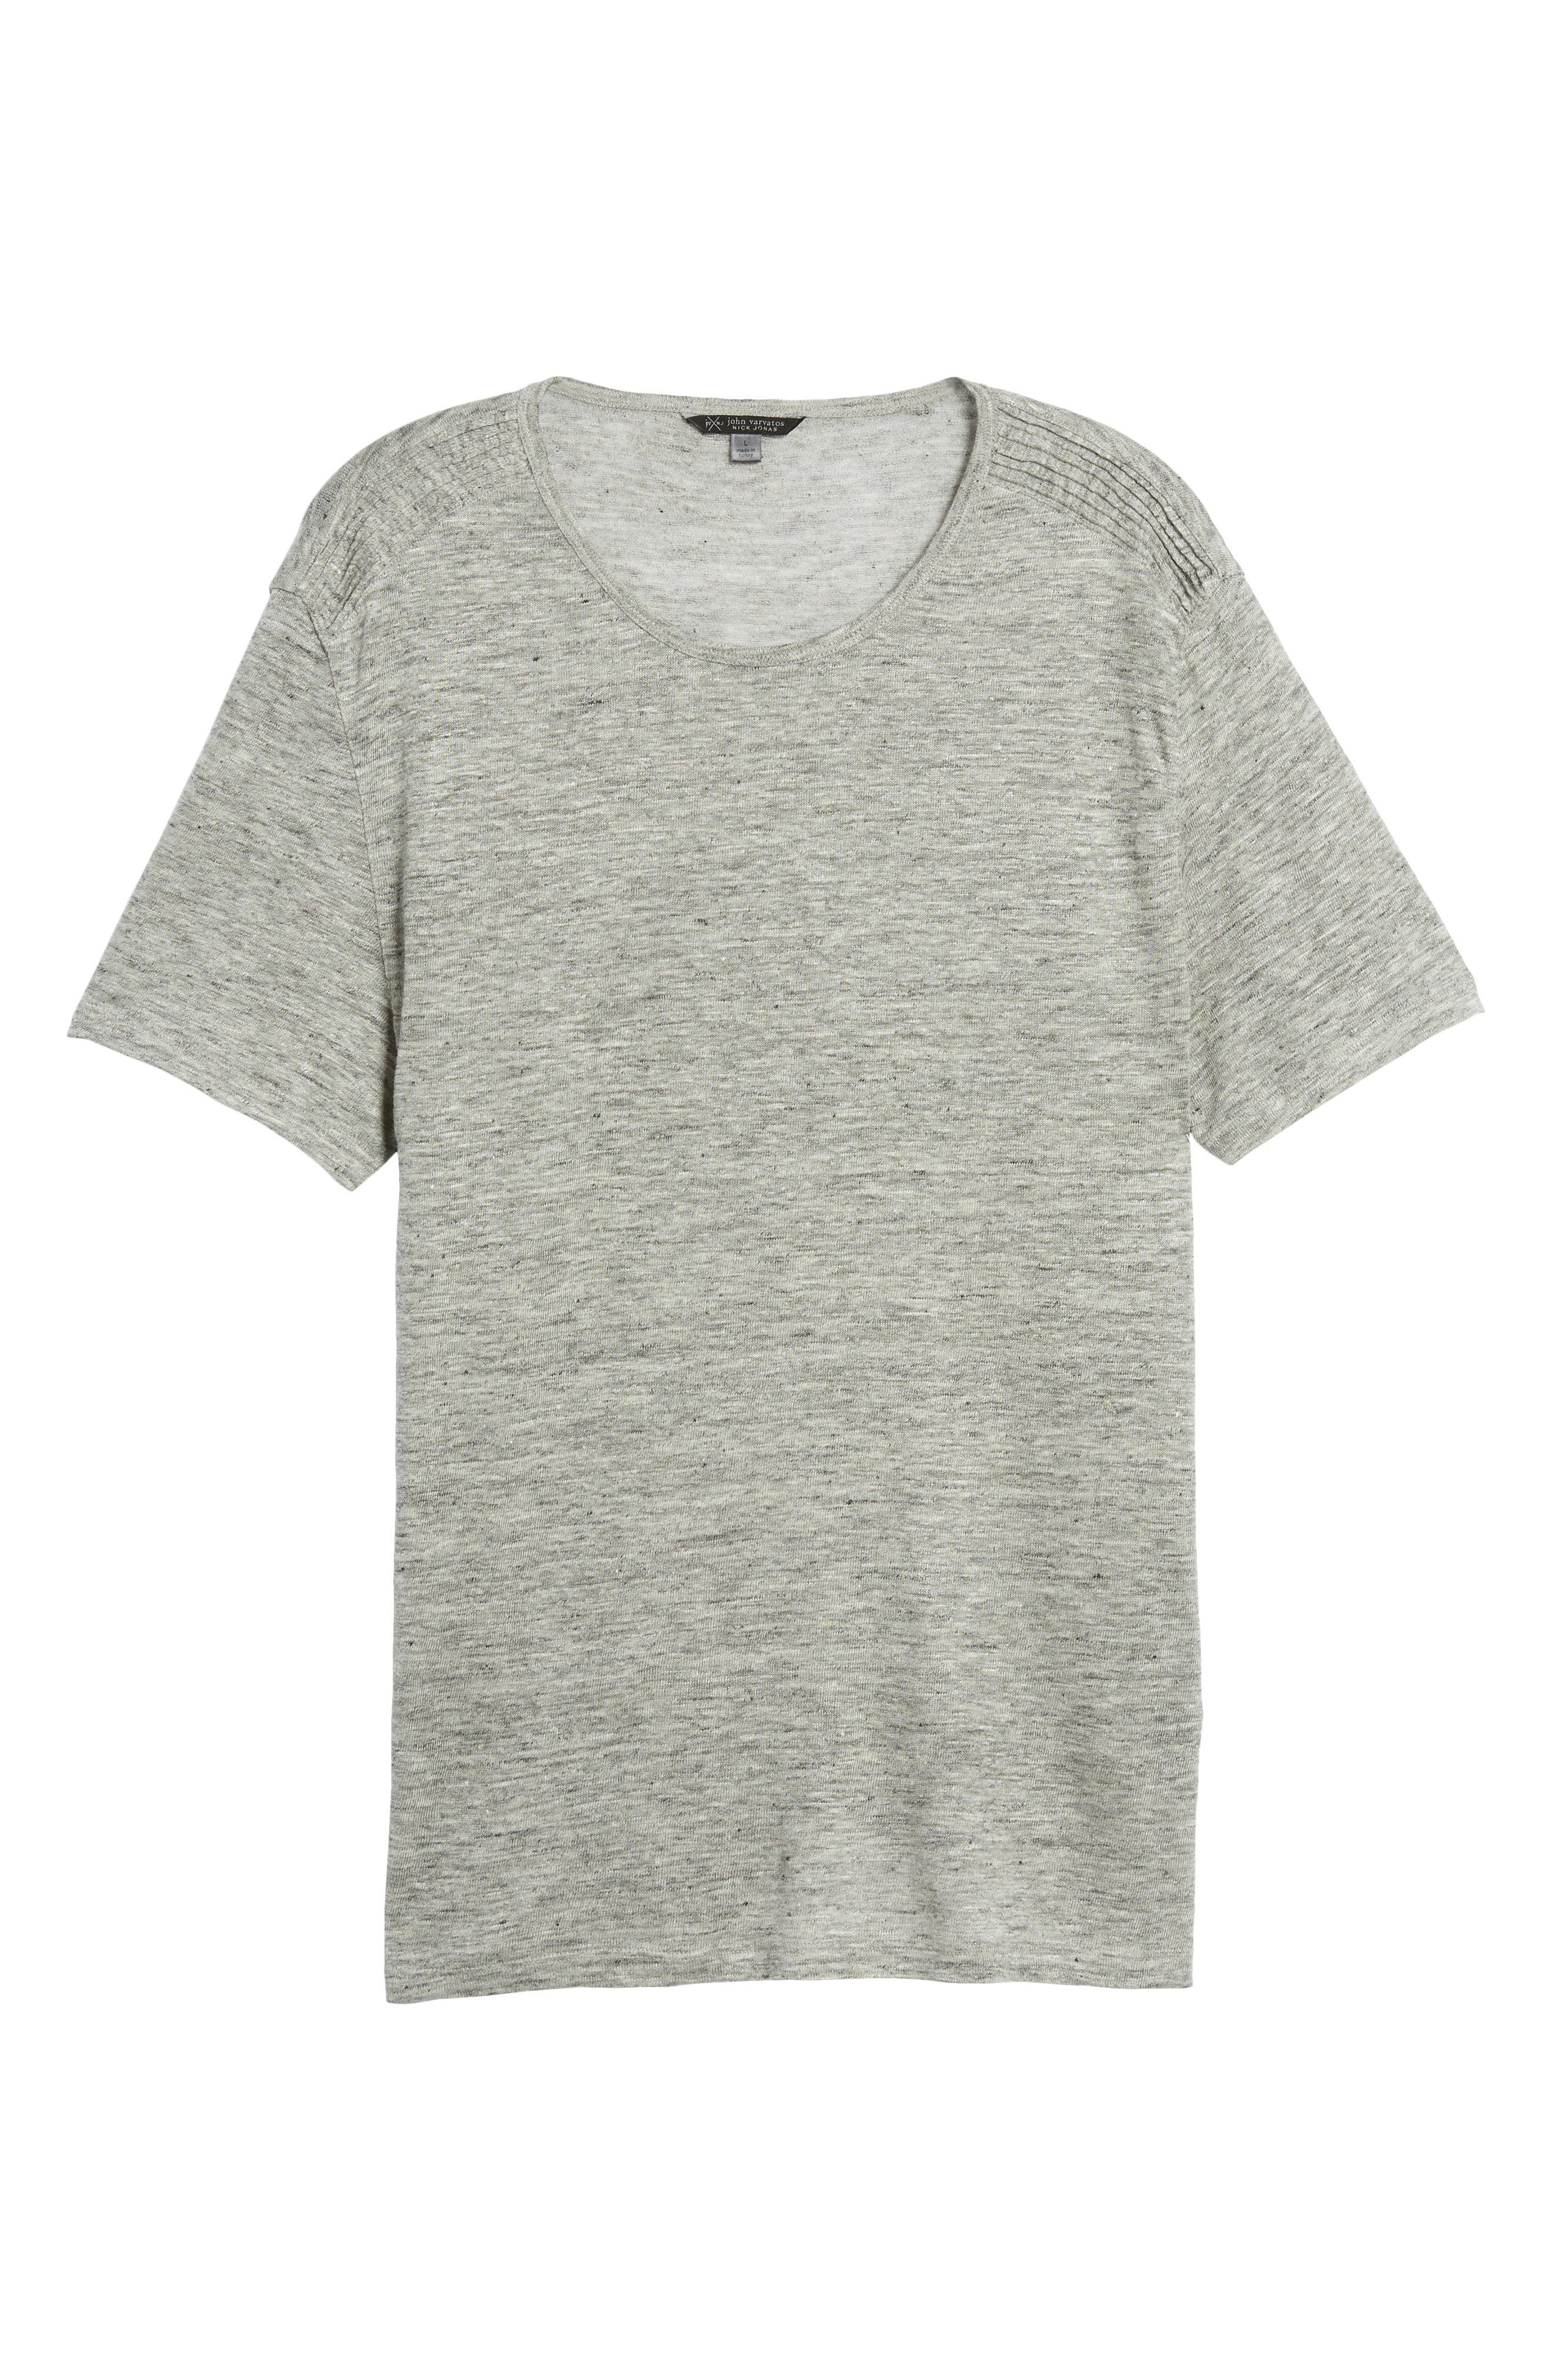 John Varvatos x Nick Jonas Linen T-Shirt,                             Alternate thumbnail 8, color,                             Light Grey Heather